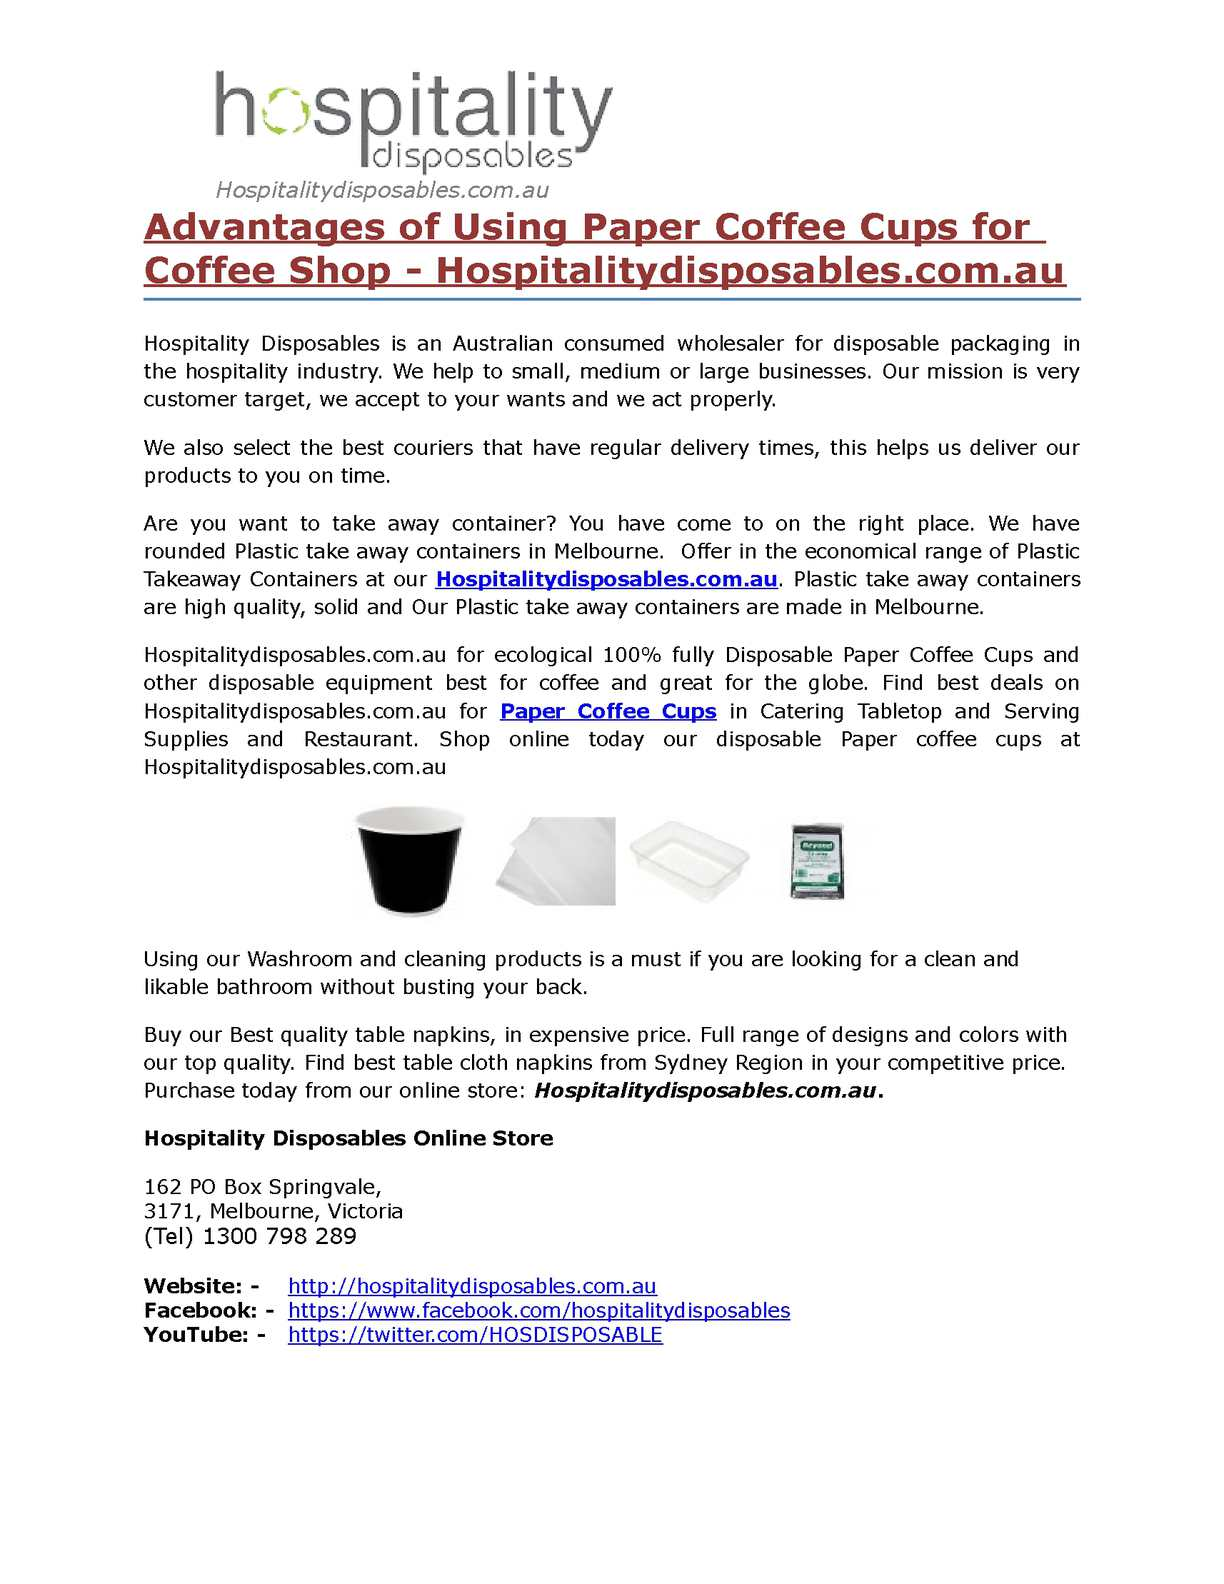 Calaméo - Advantages of Using Paper Coffee Cups for Coffee